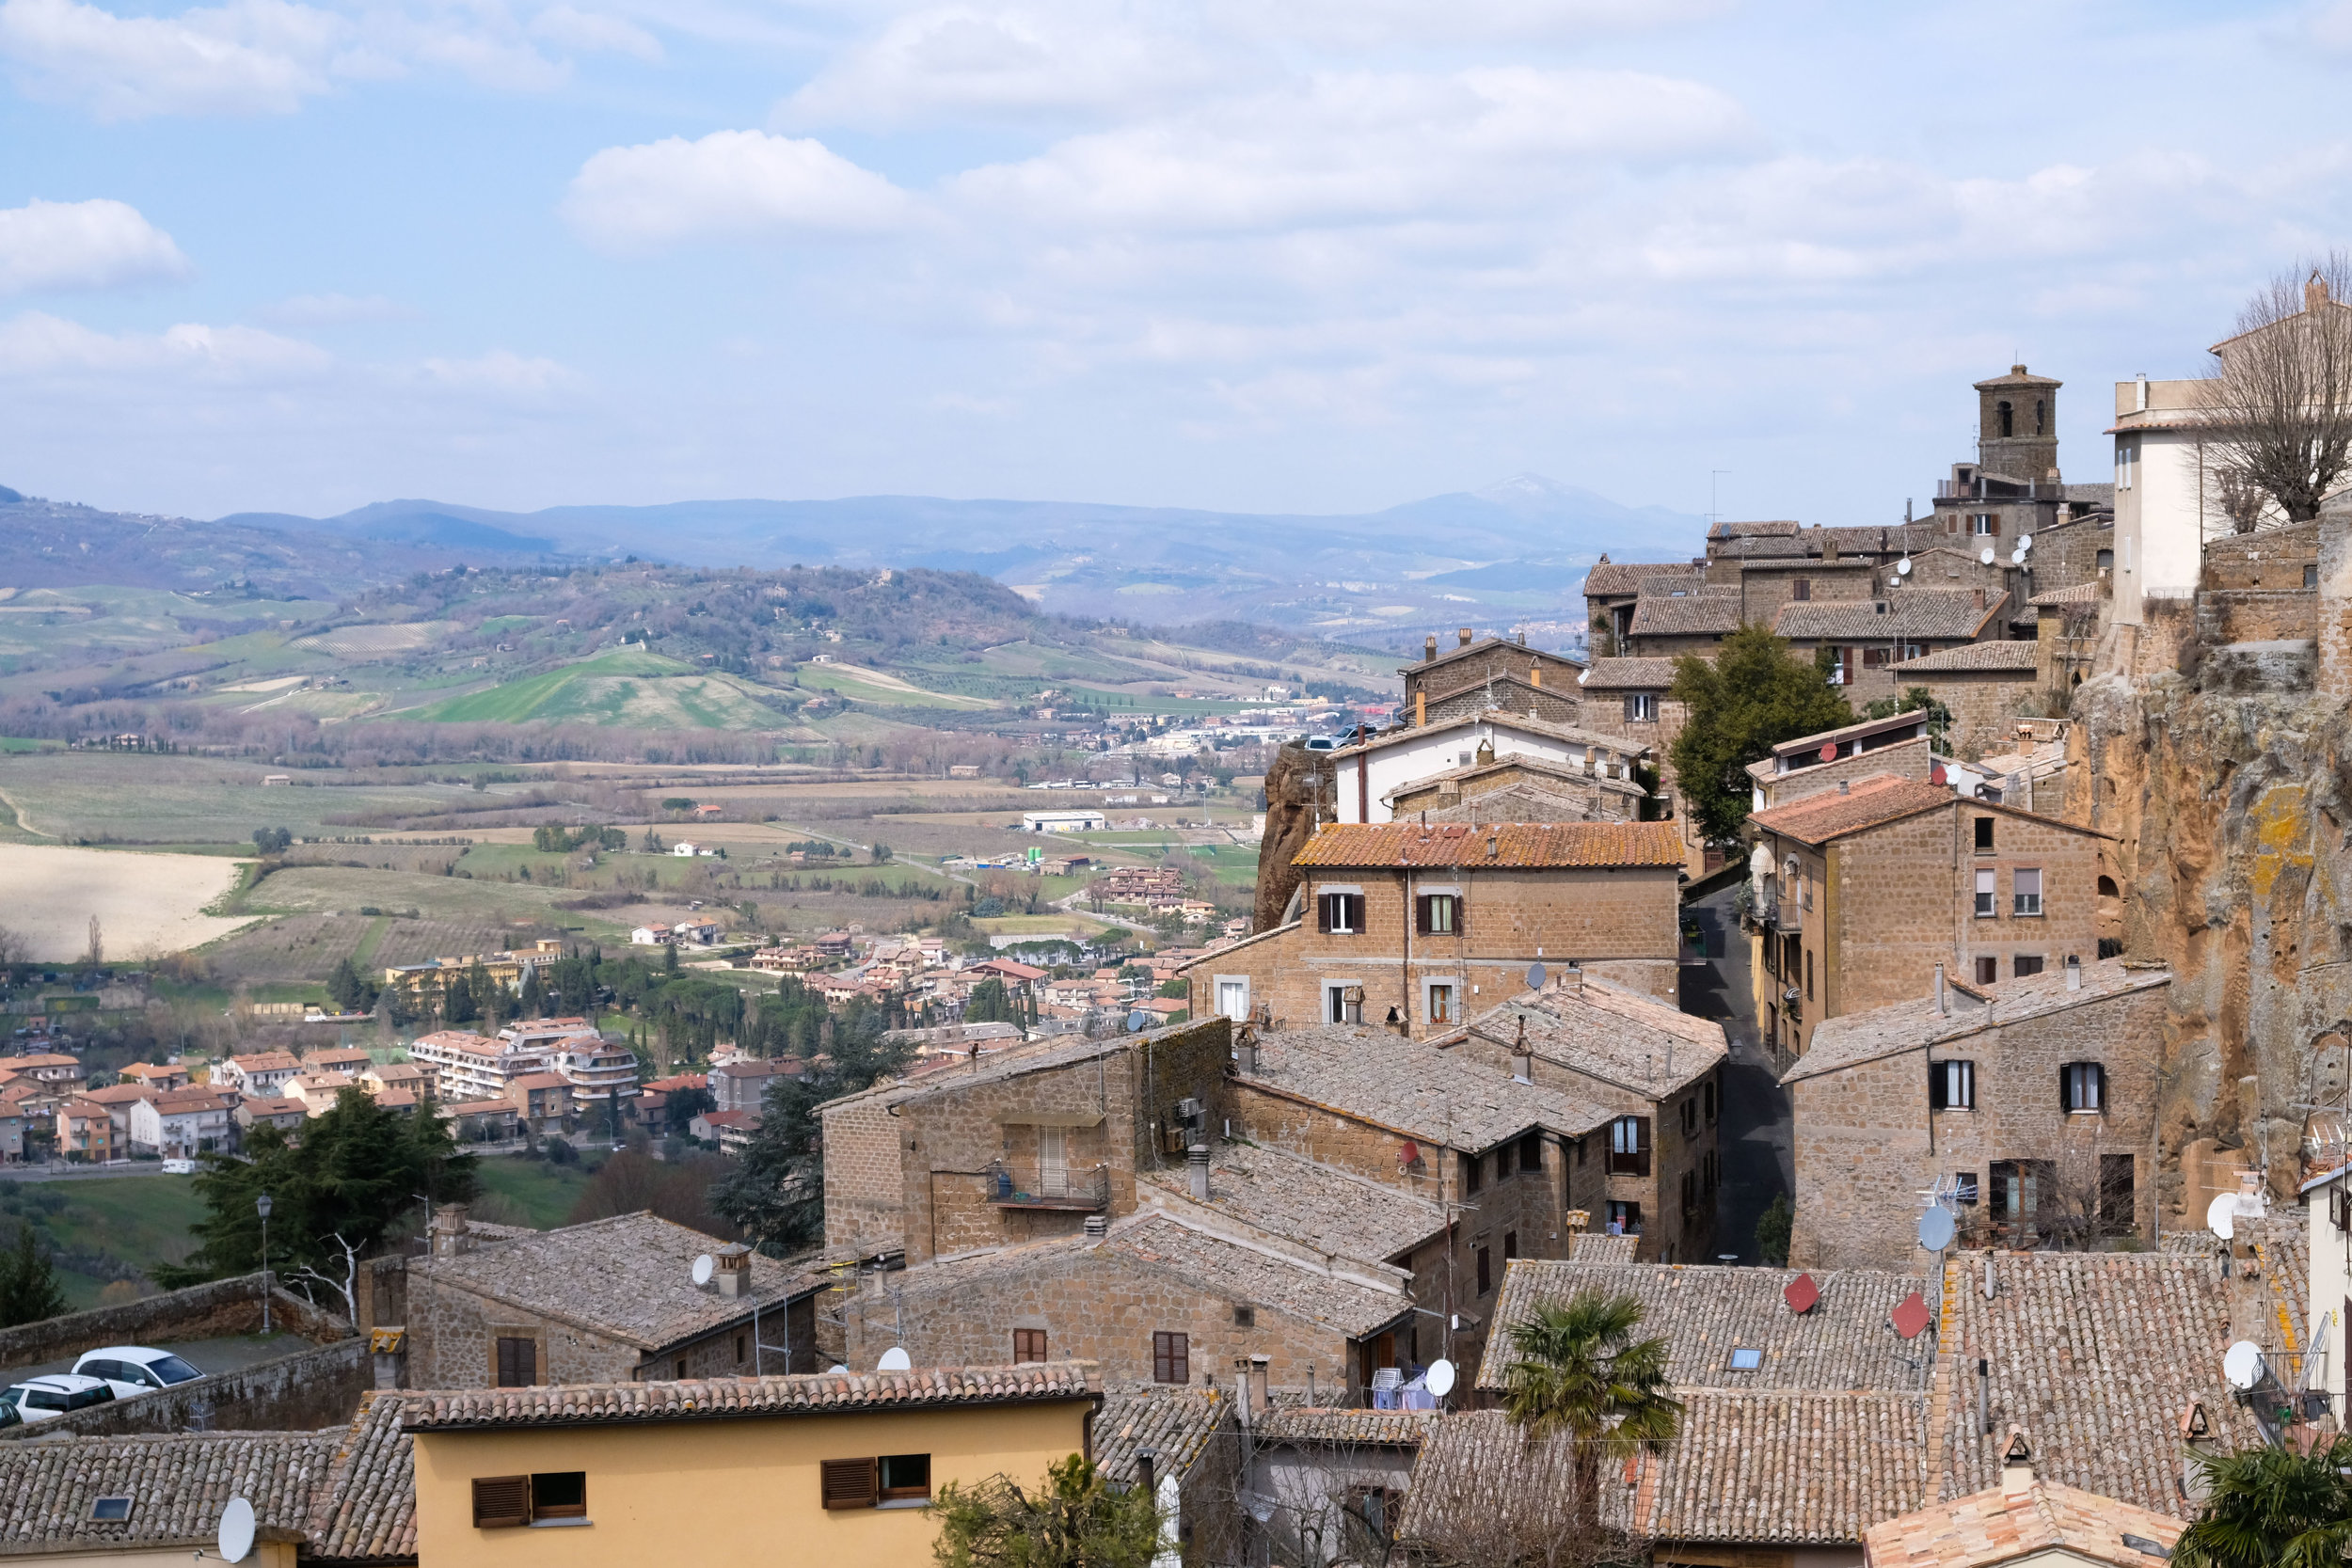 Orvieto: The perfect day trip from rome - May 9th, 2018